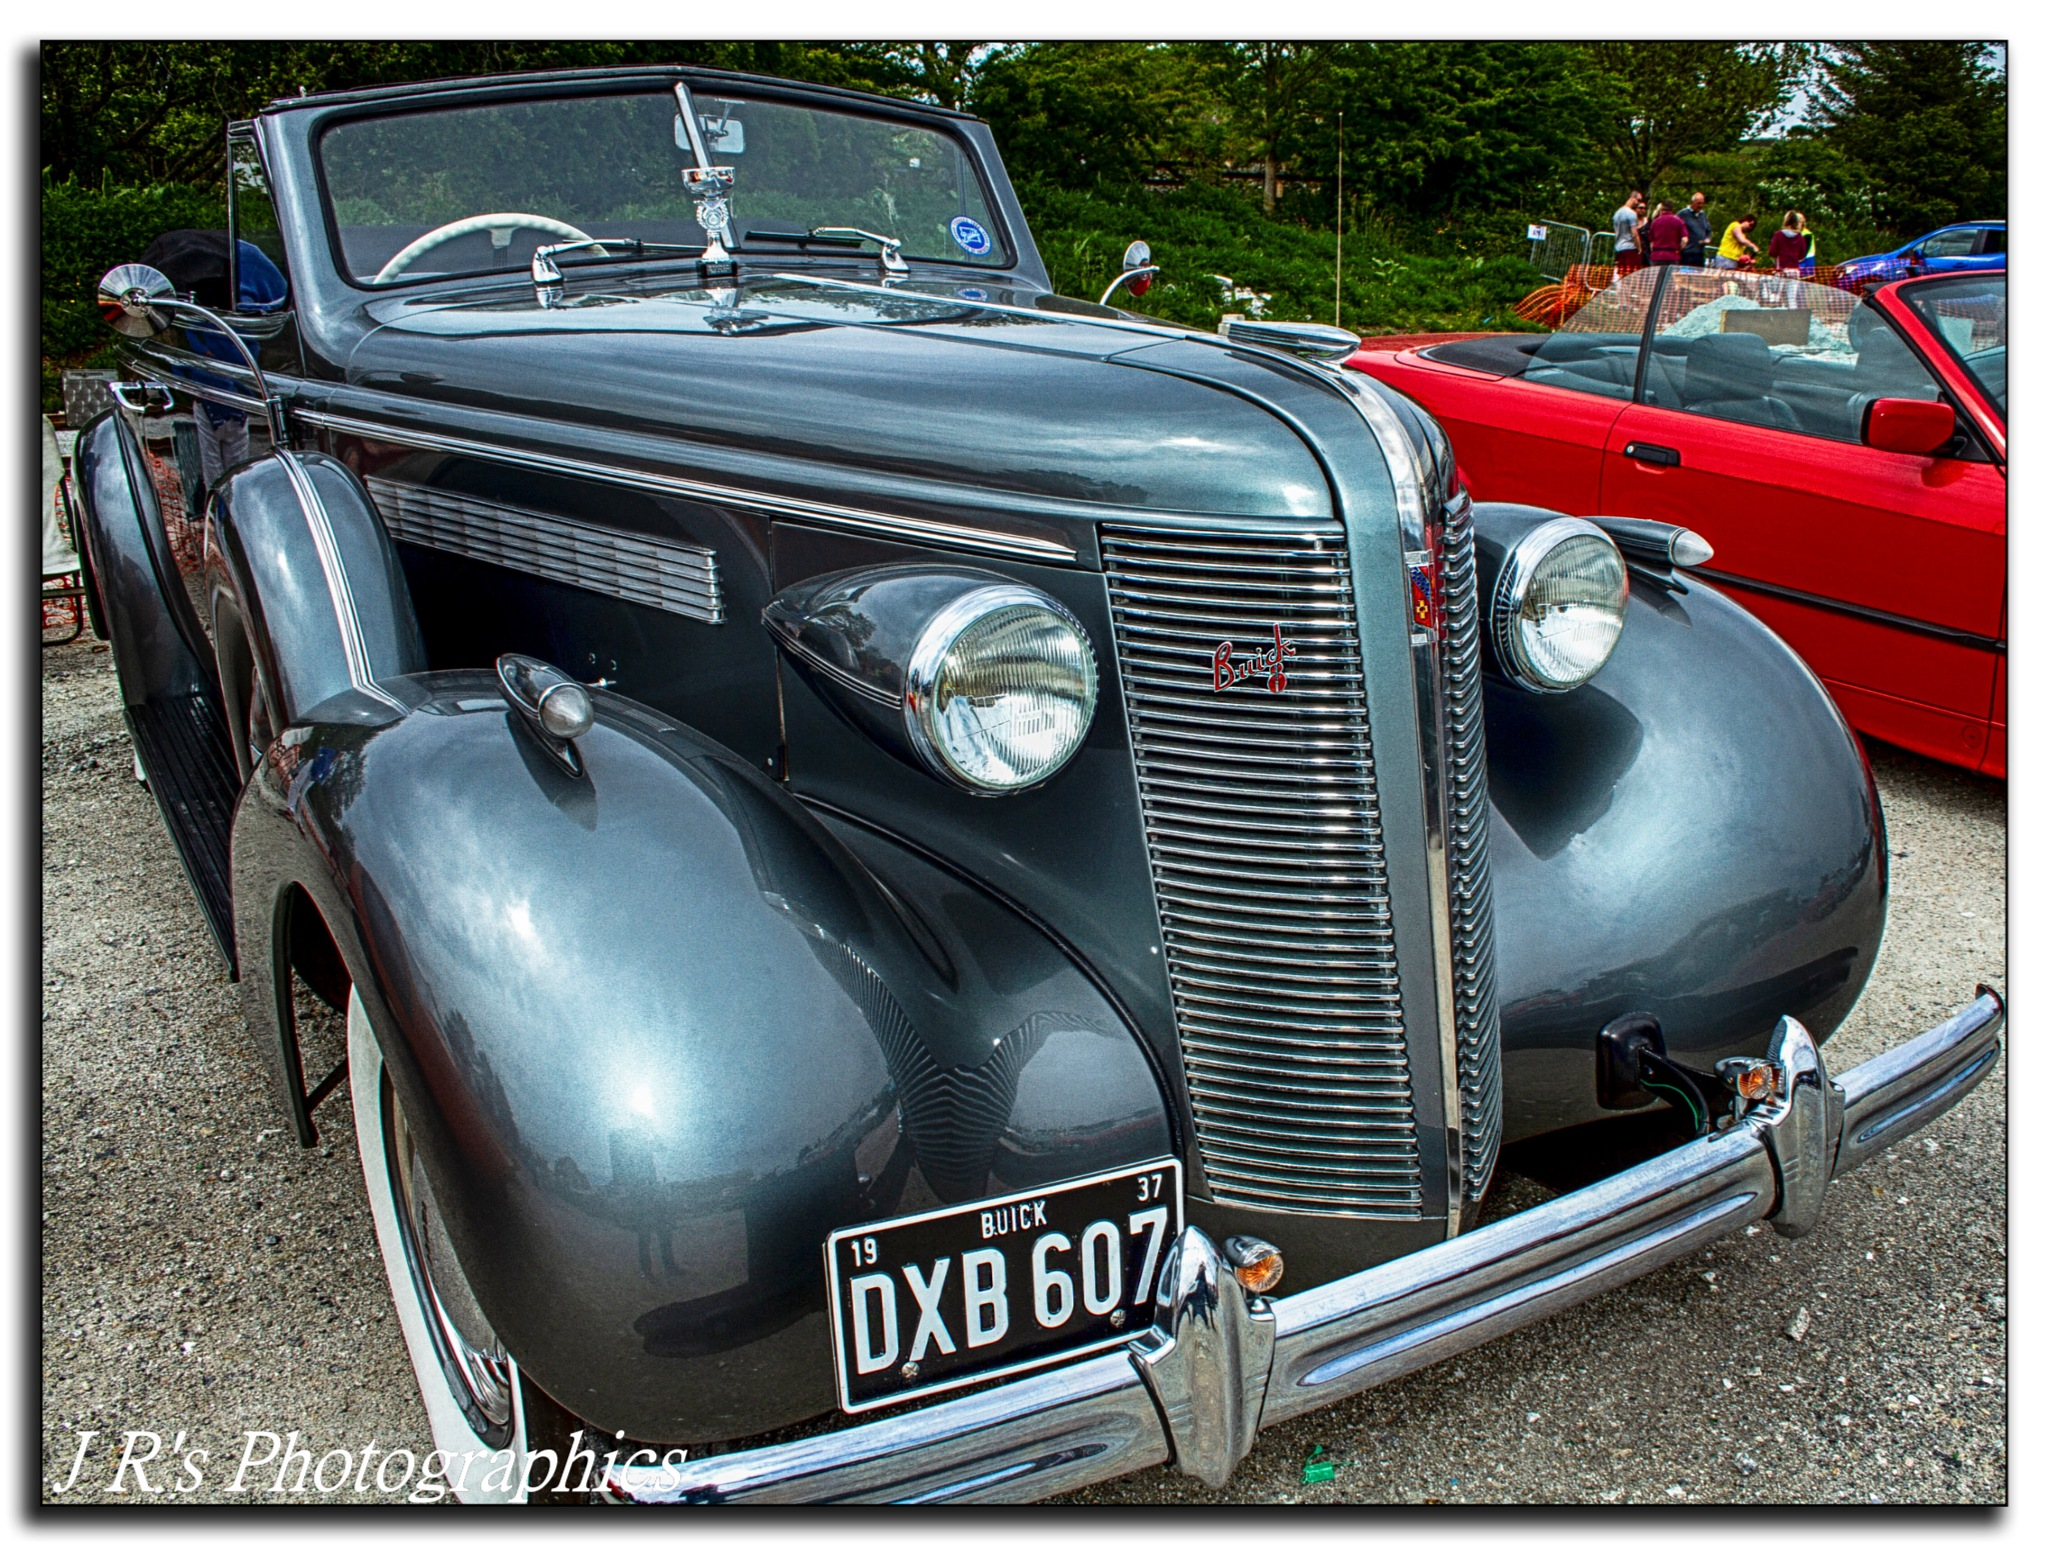 1937 Buick by johnrichards1466